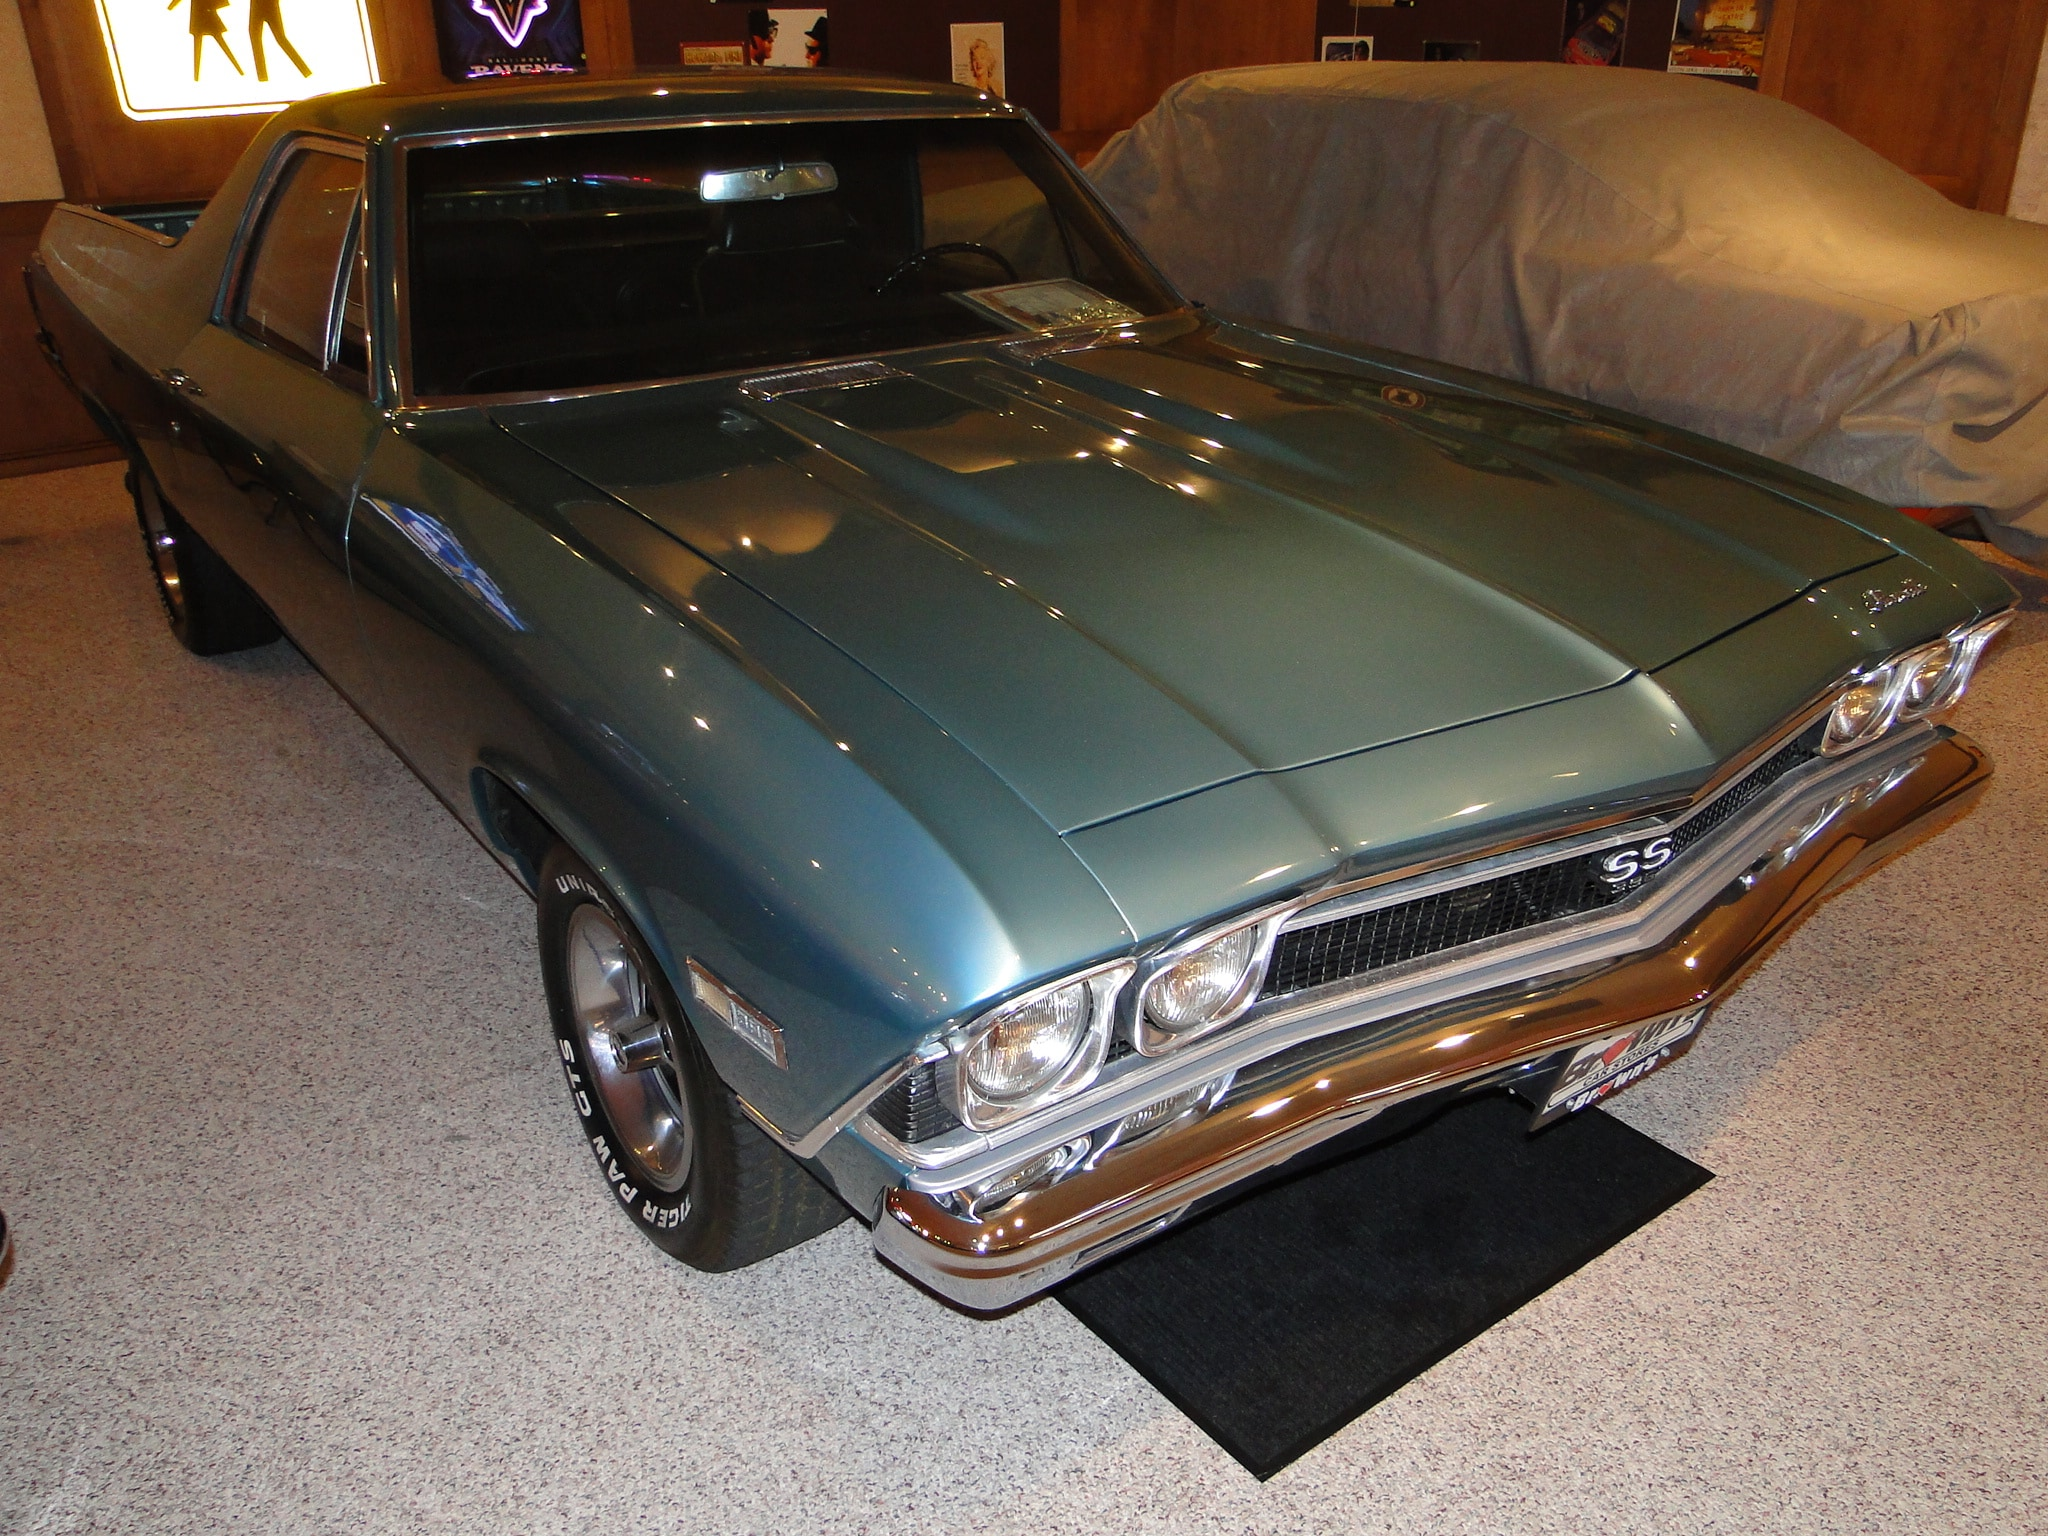 1968 Chevrolet EL Camino Super Sport SS396 Sport Glen Burnie MD